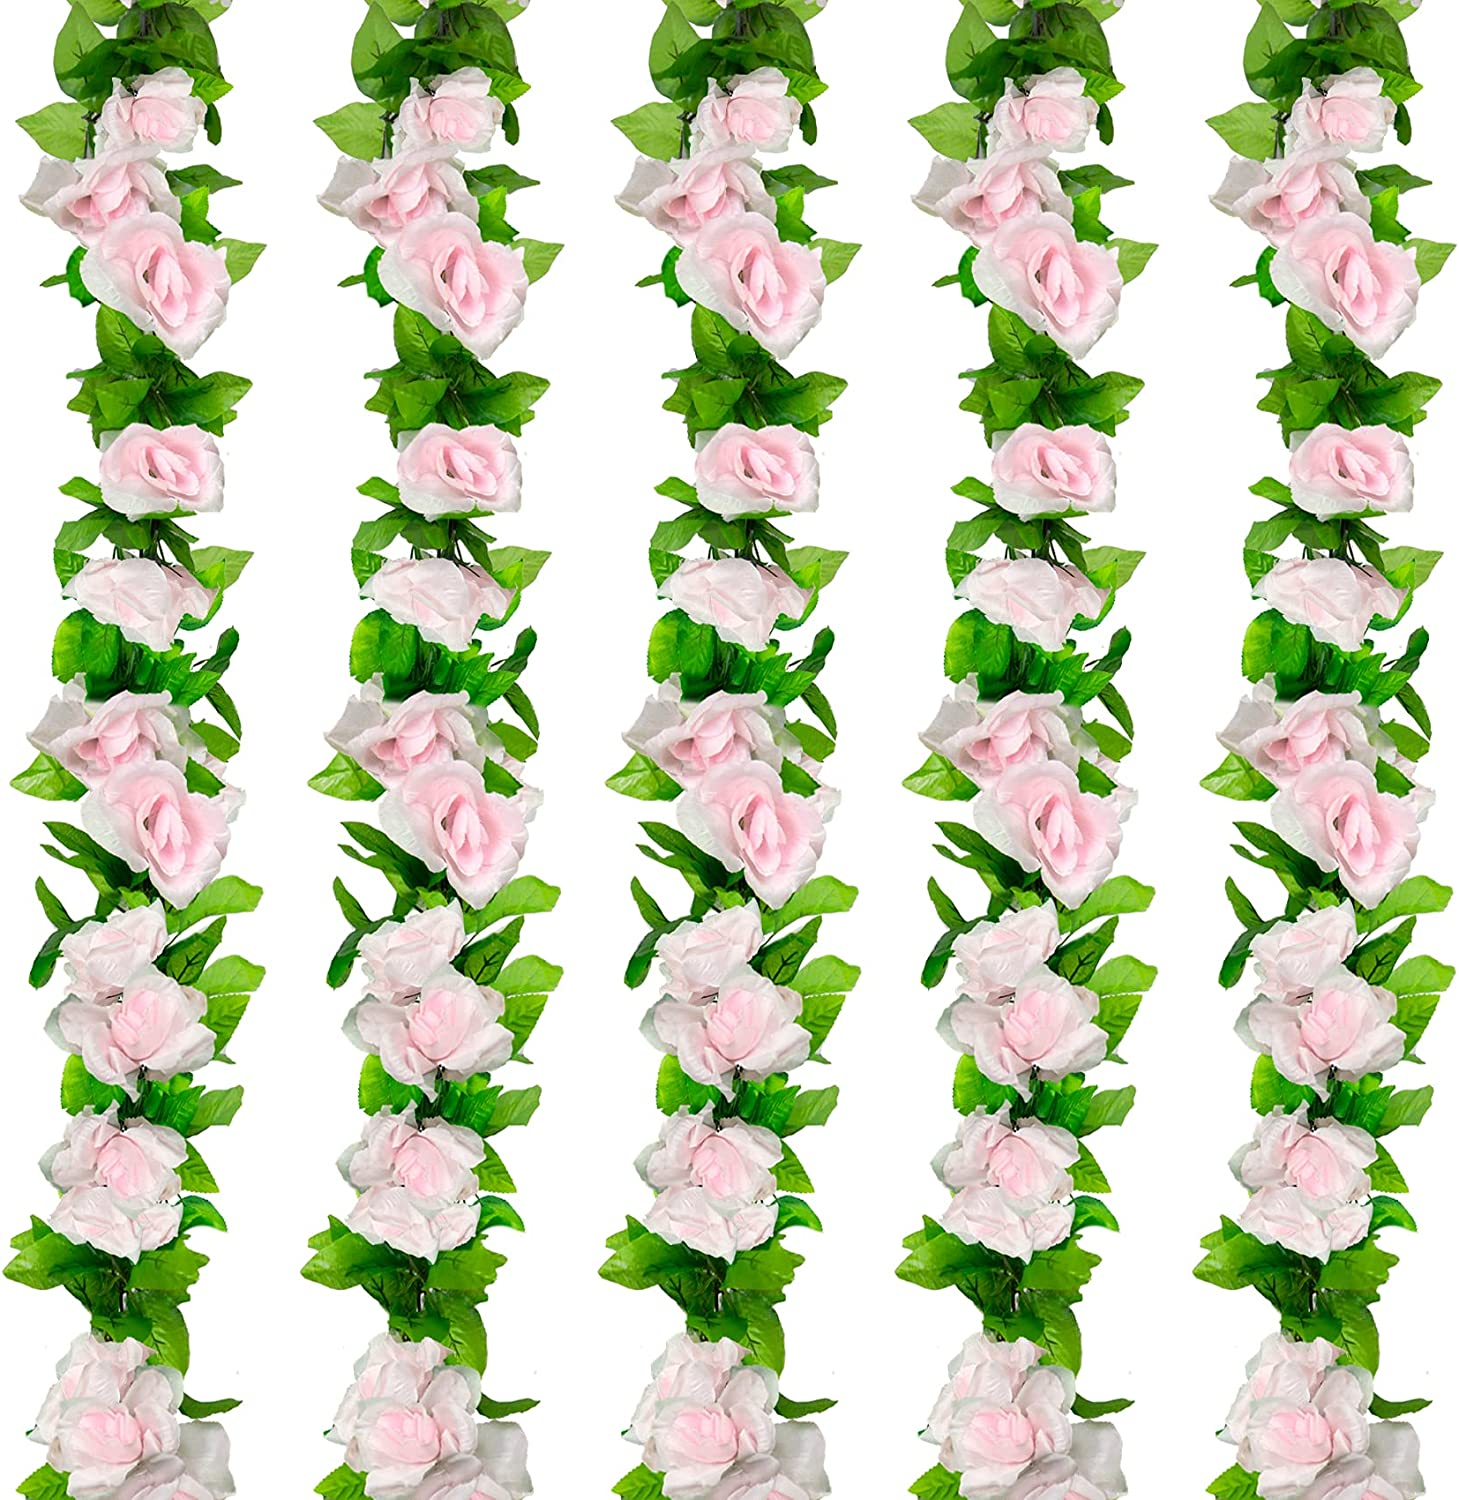 Huryfox 5 Pack Artificial Flower Vines for Indoor & Outdoor Decoration Fake Roses Rattan Ivy Hanging Floral Garland Decor for Wedding Arch/Birthday Party/Event Background Wall (Pink)